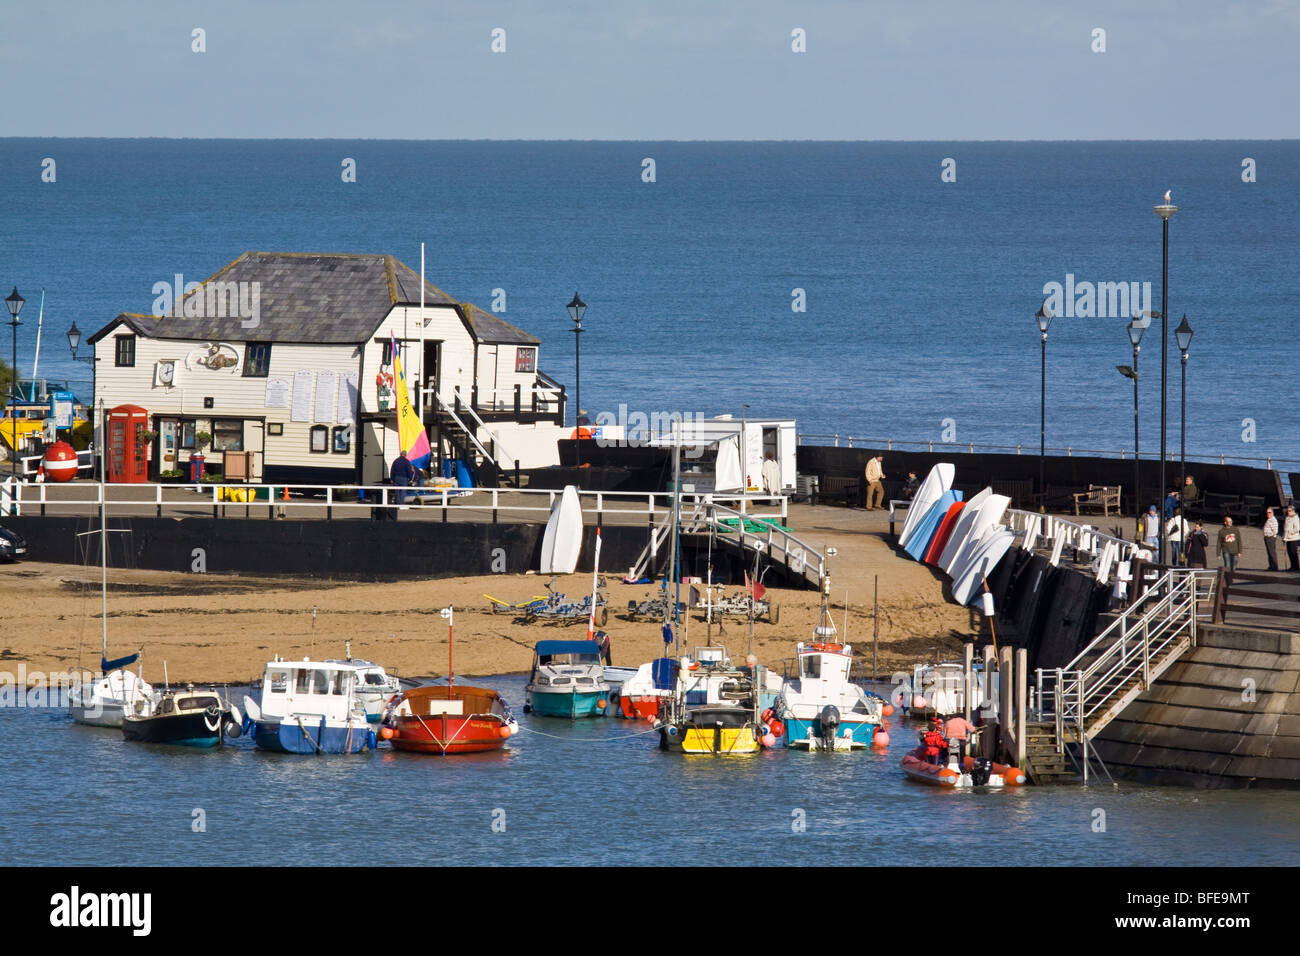 Harbour at Broadstairs Kent - Stock Image